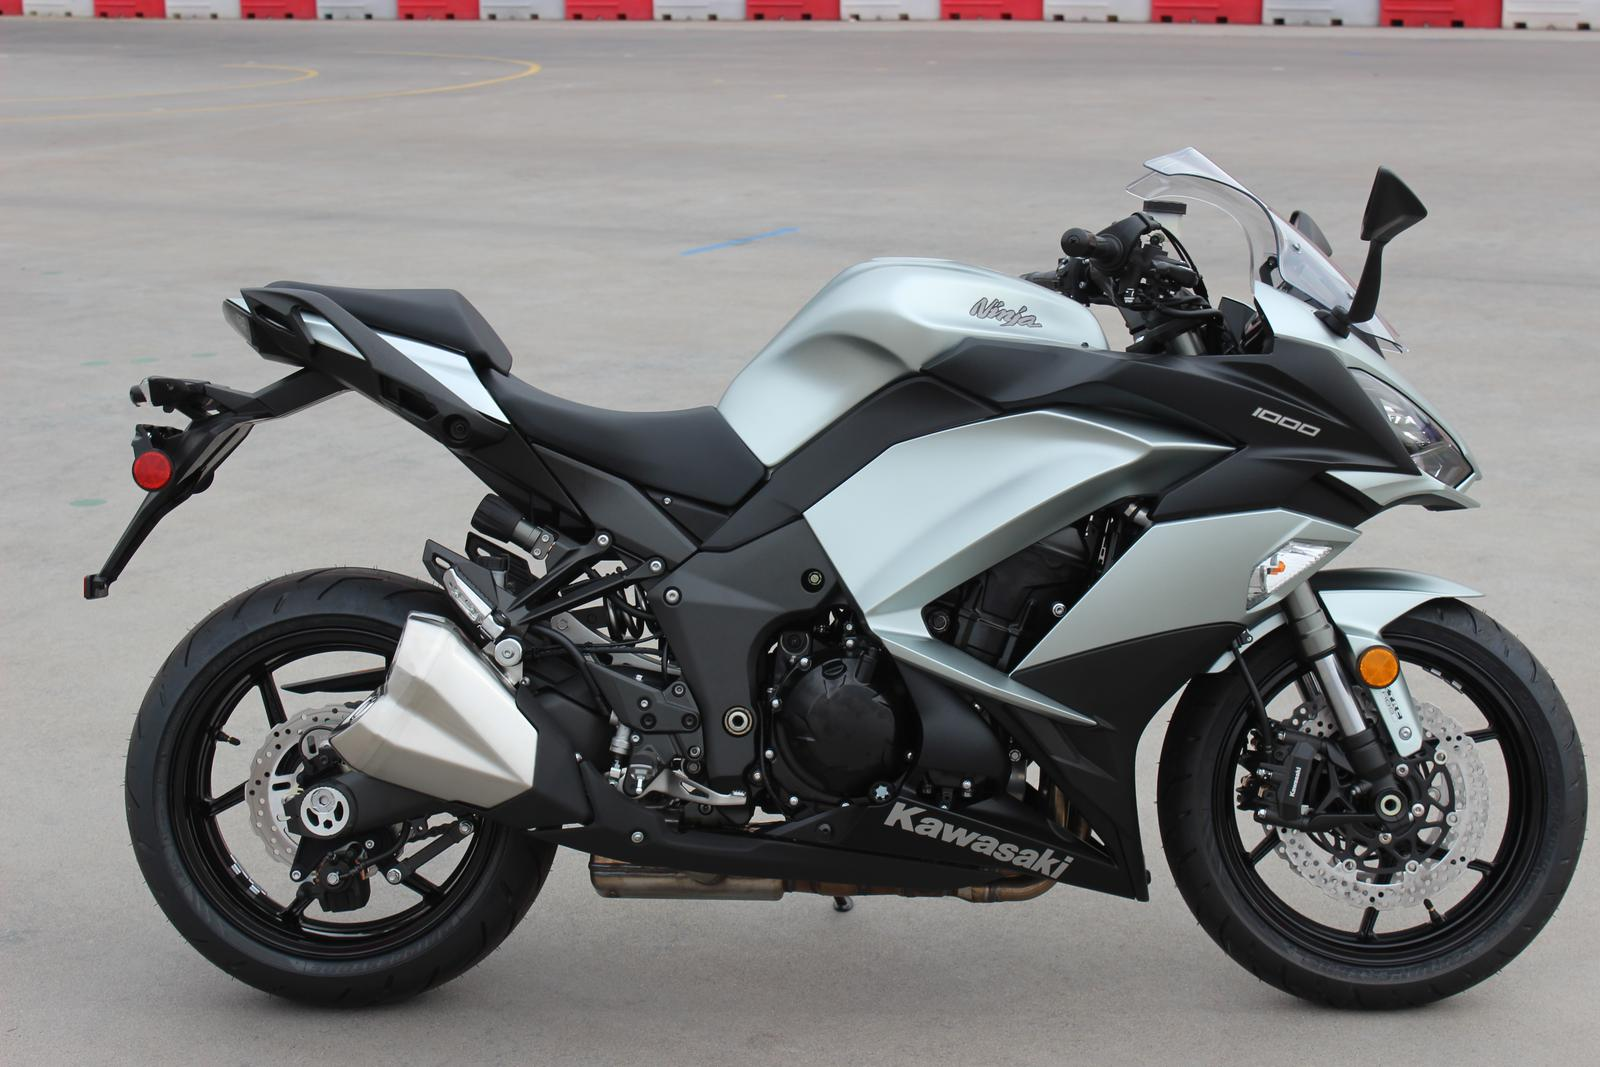 Spyder Motorcycle For Sale >> Can Am Spyder Motorcycles For Sale Buy Sportbikes Product On Alibaba Com